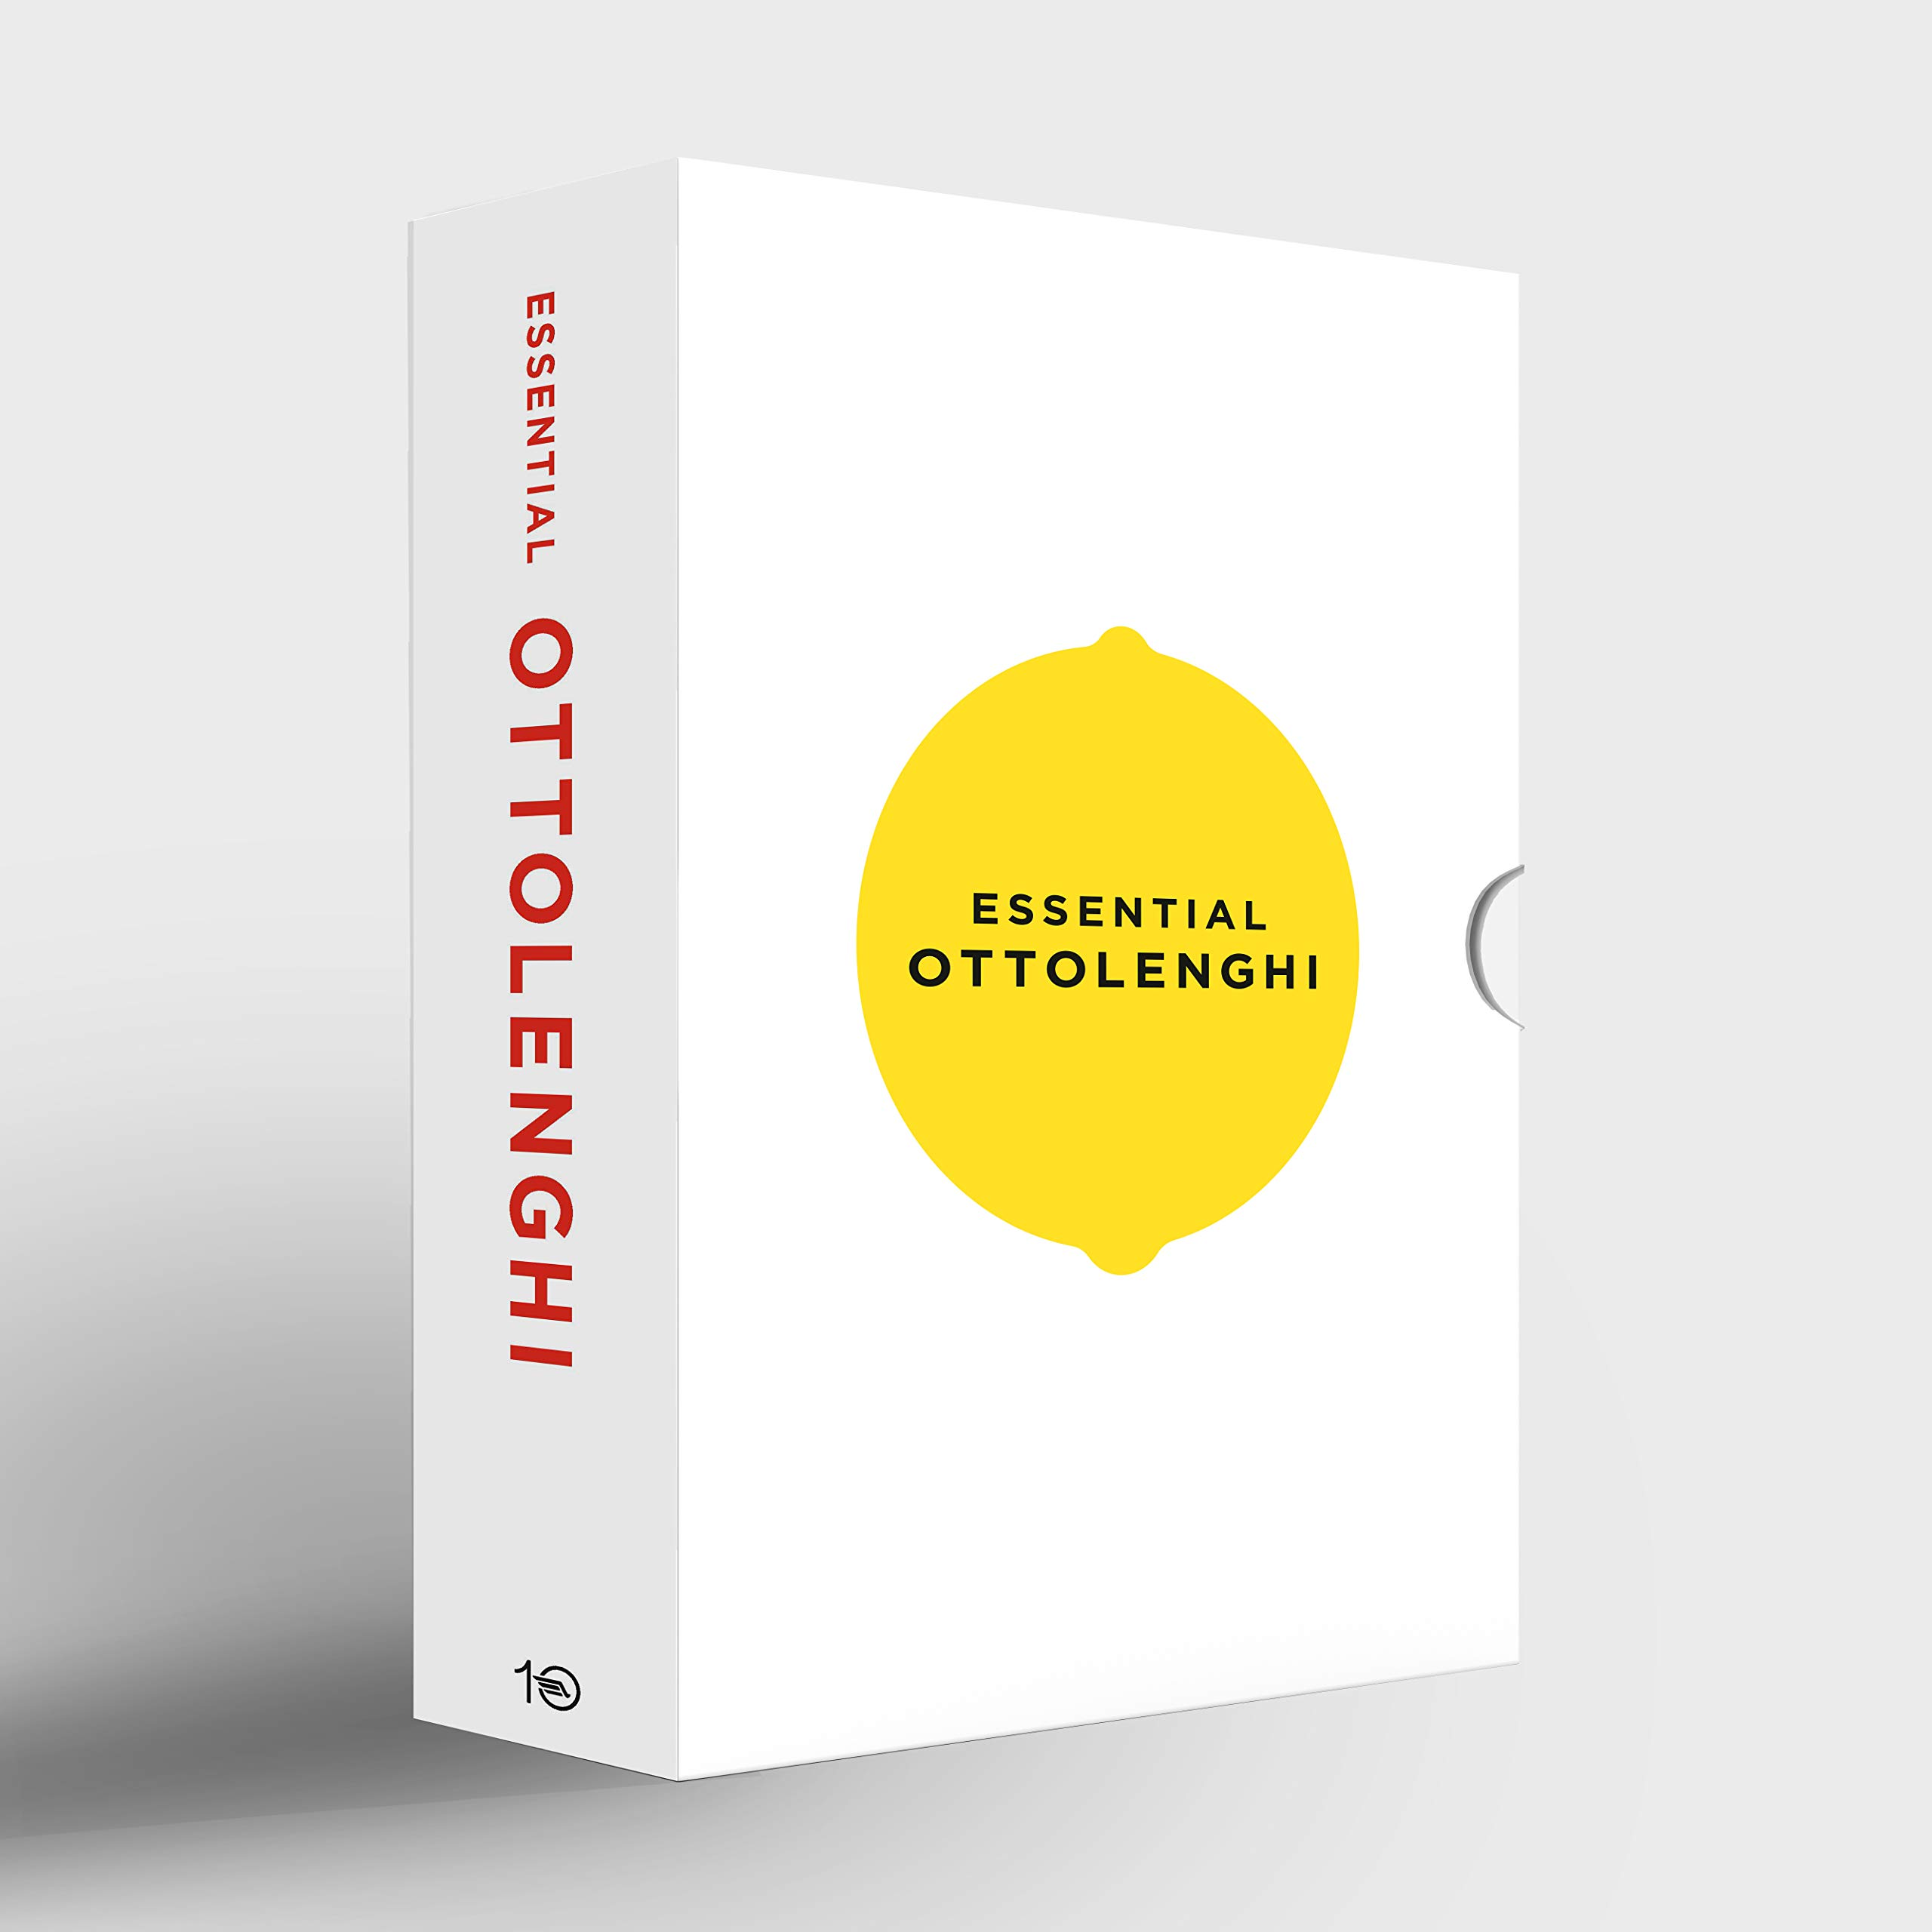 Essential Ottolenghi [Special Edition, Two-Book Boxed Set]: Plenty More and Ottolenghi Simple by Ten Speed Press